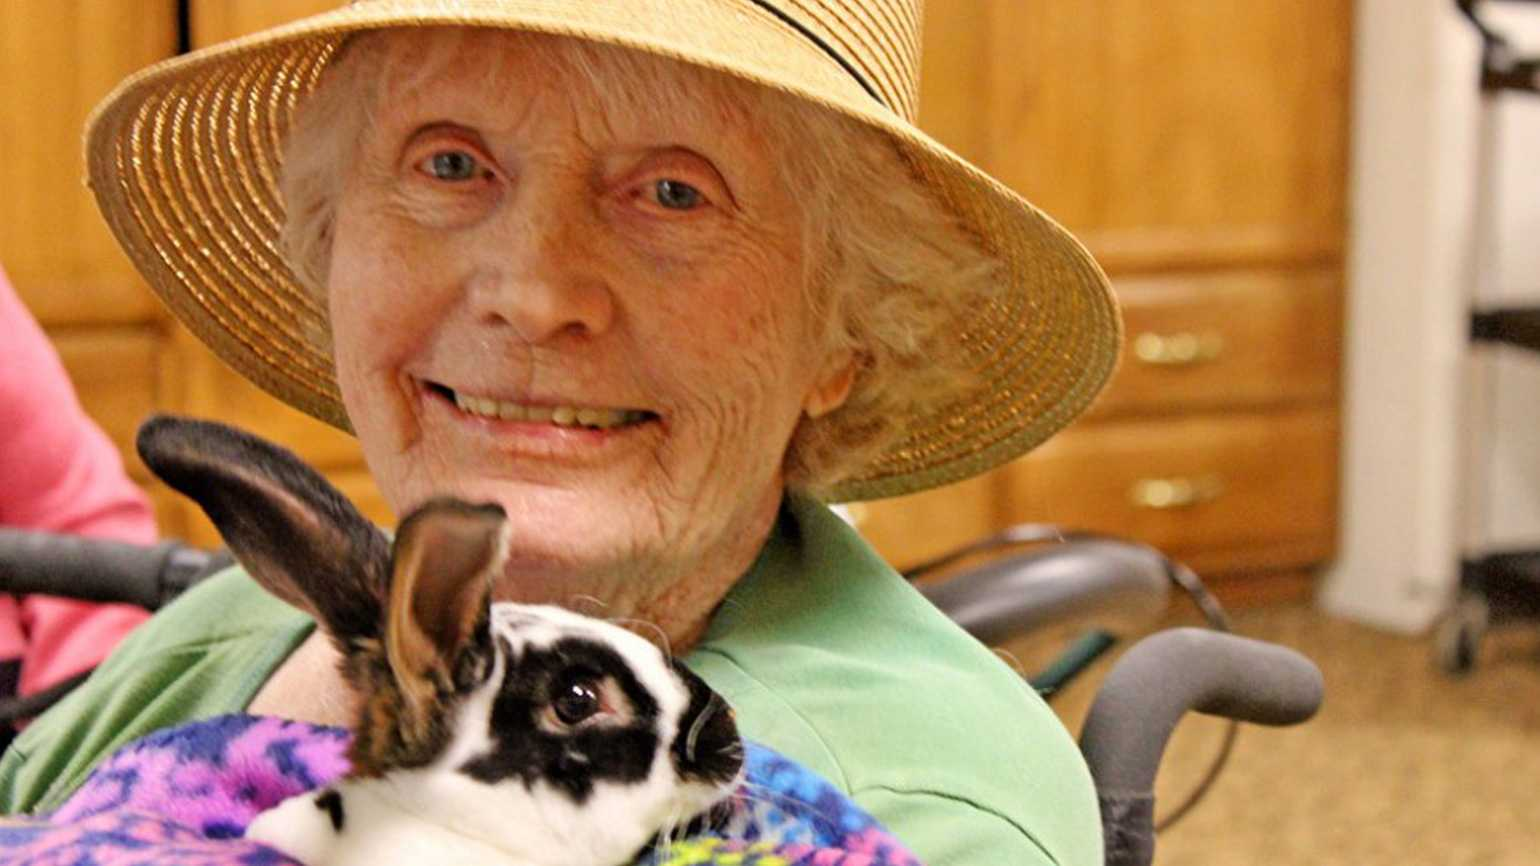 June Floyd has a special relationship with the rabbit — appropriately named Thumper — that makes her home in the senior living location in Fort Collins, Colorado, where June lives. Thumper's favorite lunch? Salad bar, of course.